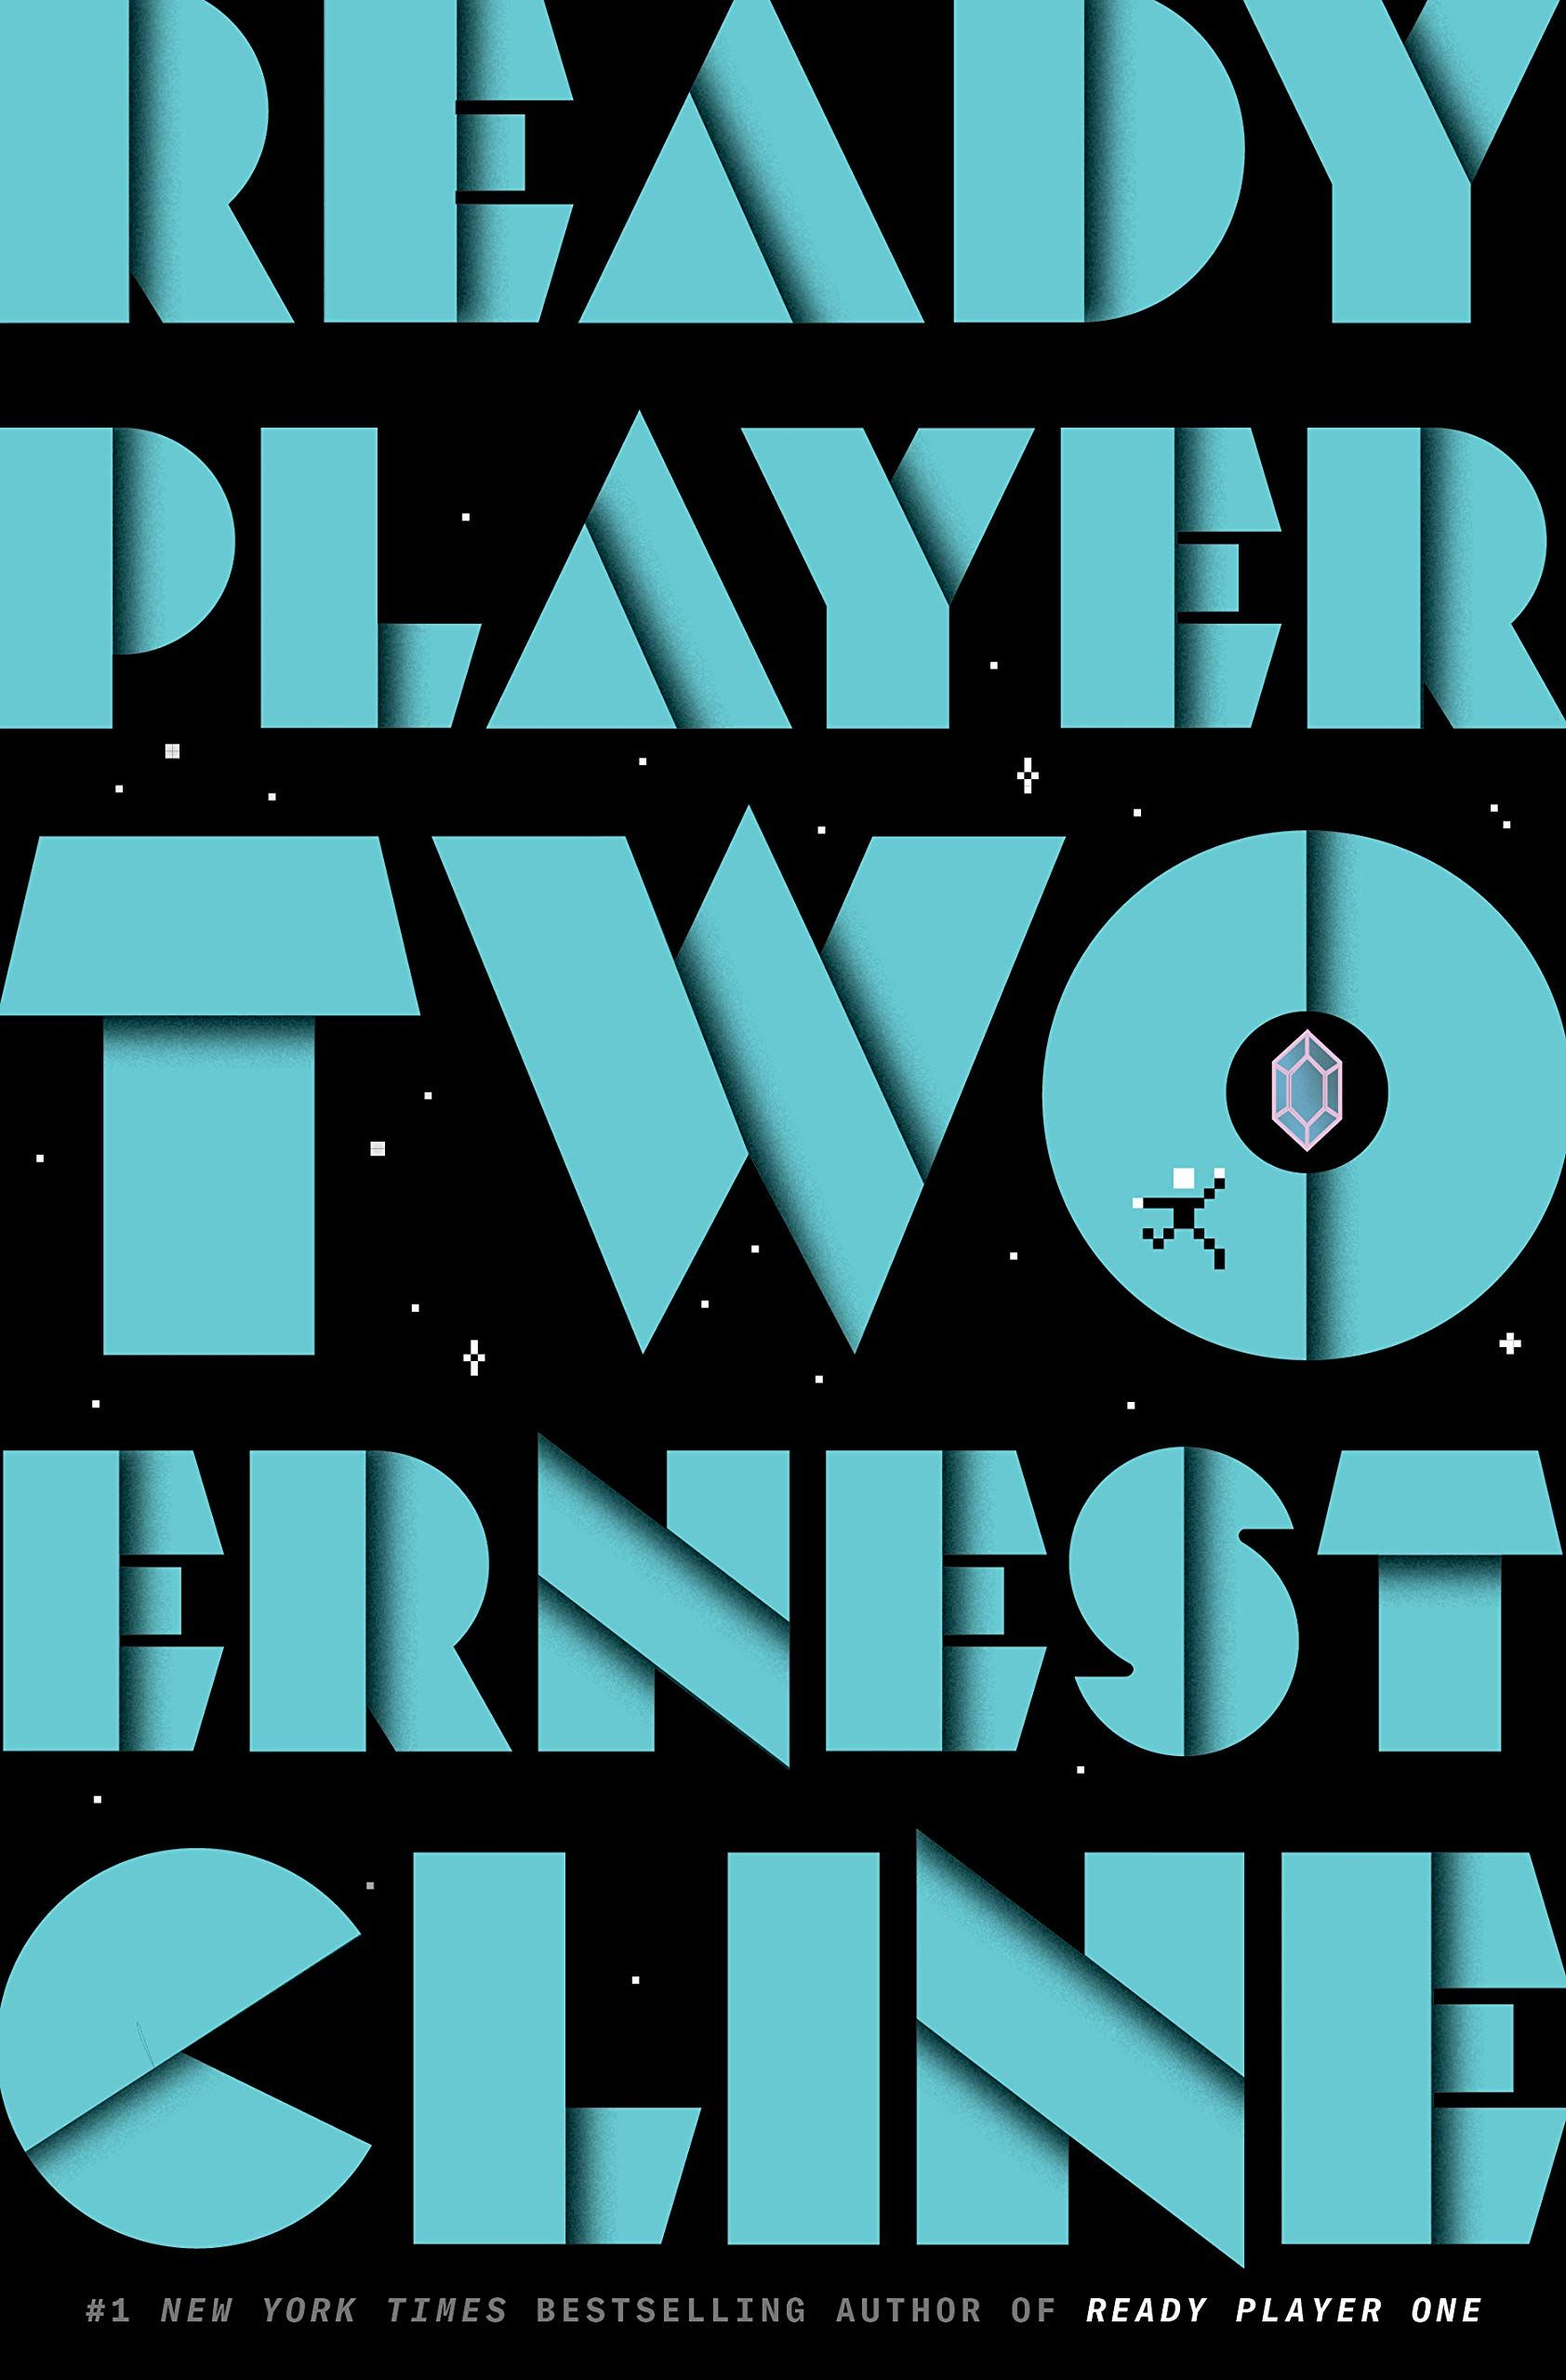 Ready Player Two A Novel By Ernest Cline In 2020 Ready Player Two Ready Player One Ready Player One Book